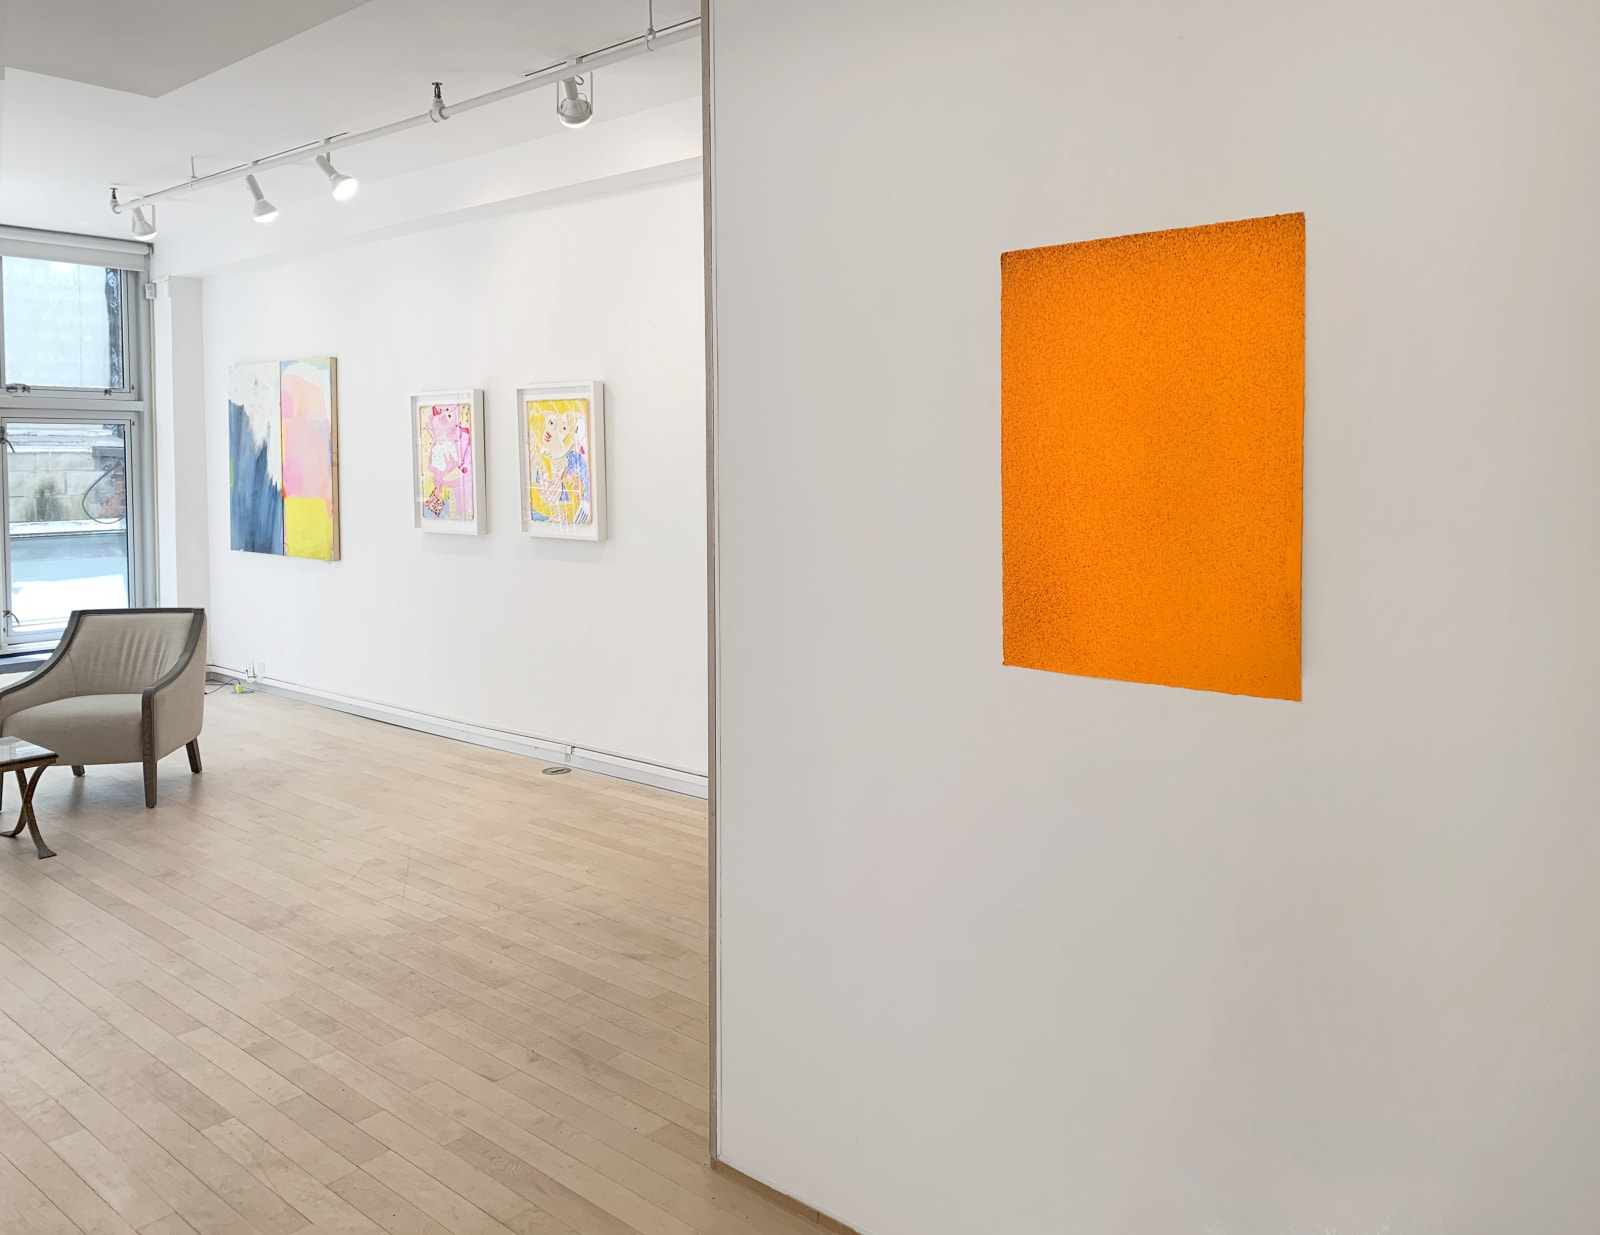 Installation view: Taggart Times 7